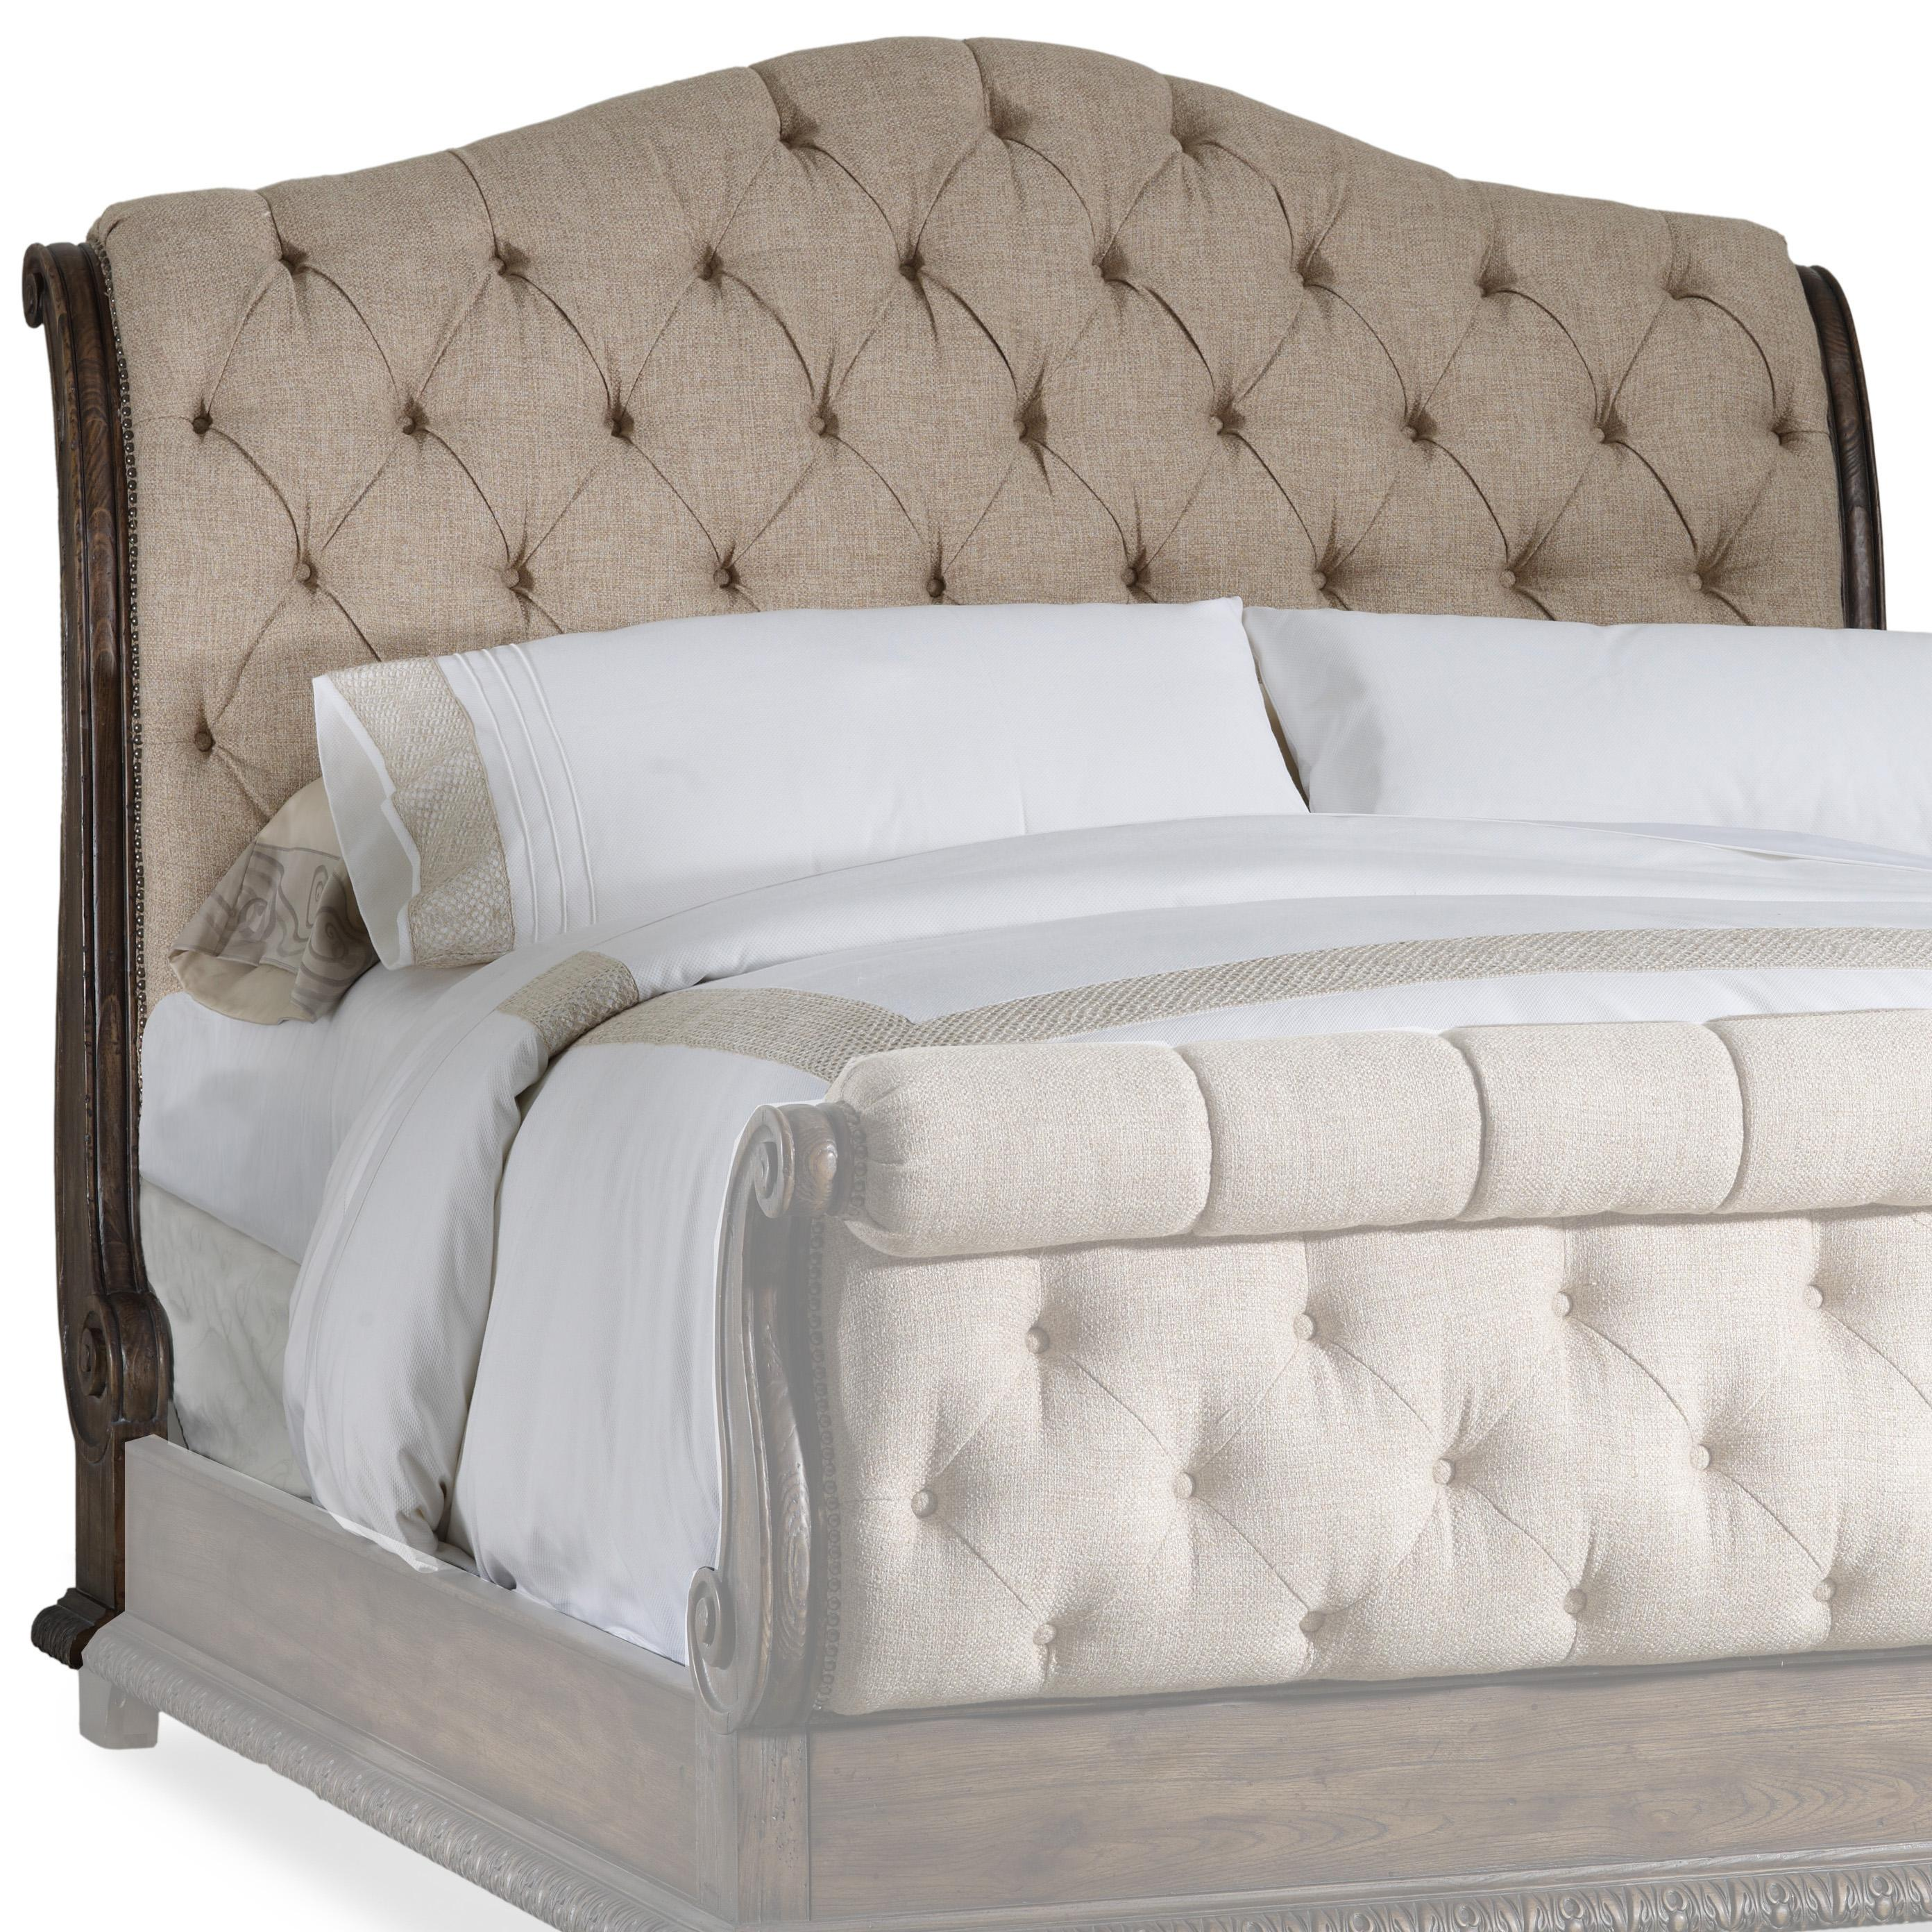 Breathtaking quilted headboard with pillows and queen bed size platform decorating combined with night lamp and sidetable